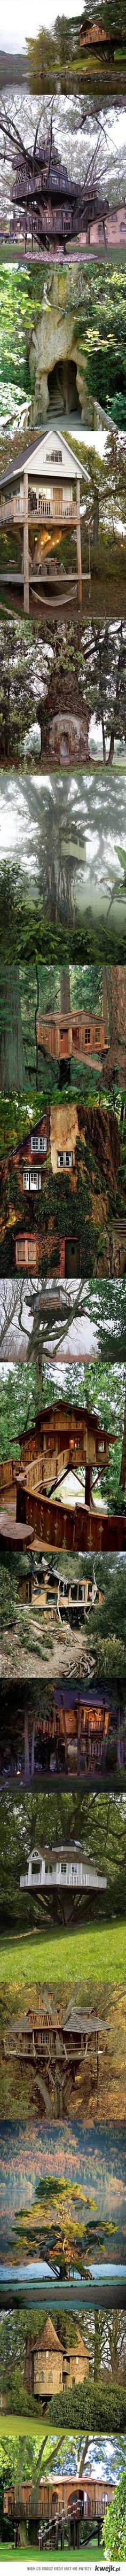 I just need to live in a tree house.